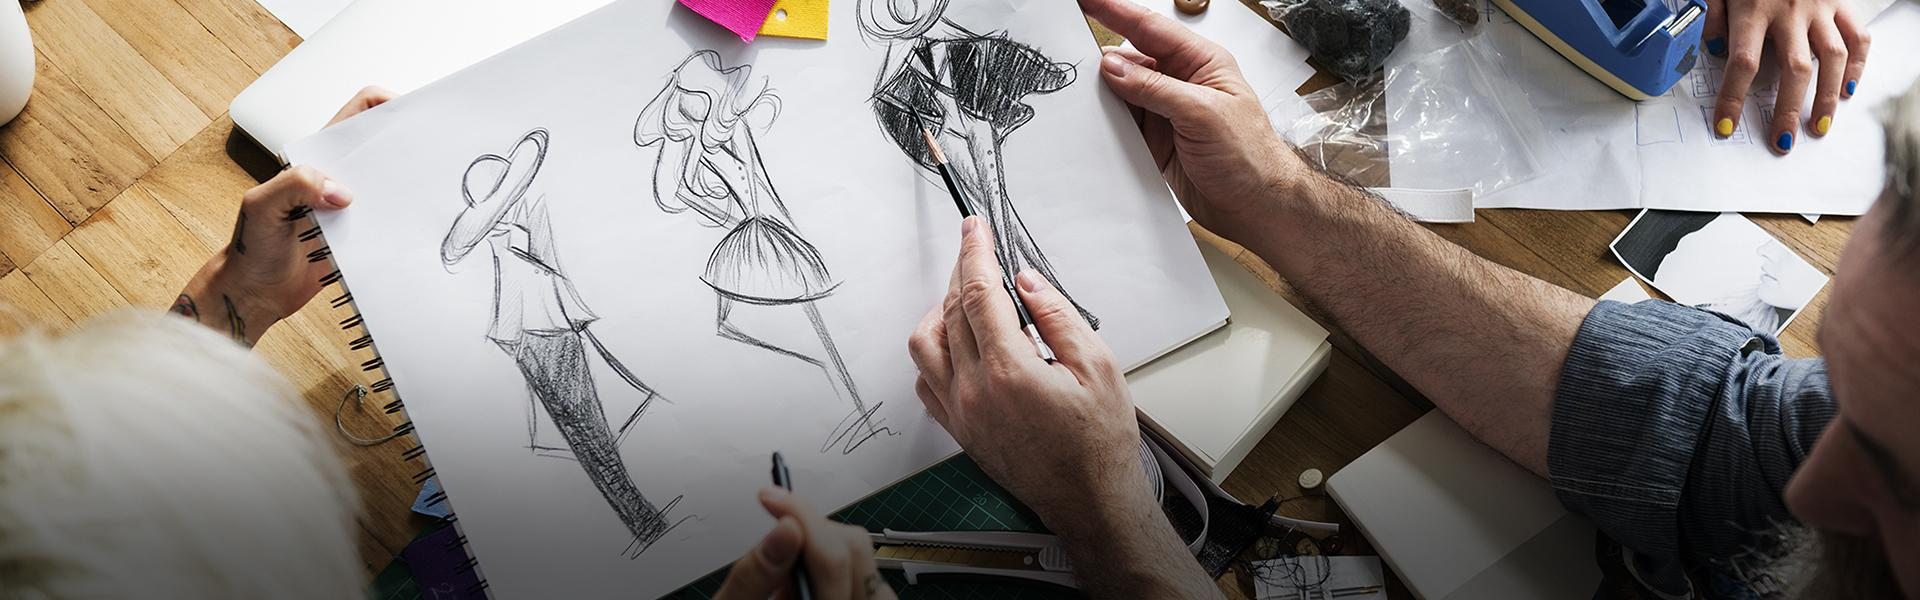 A person sketching fashion designs.